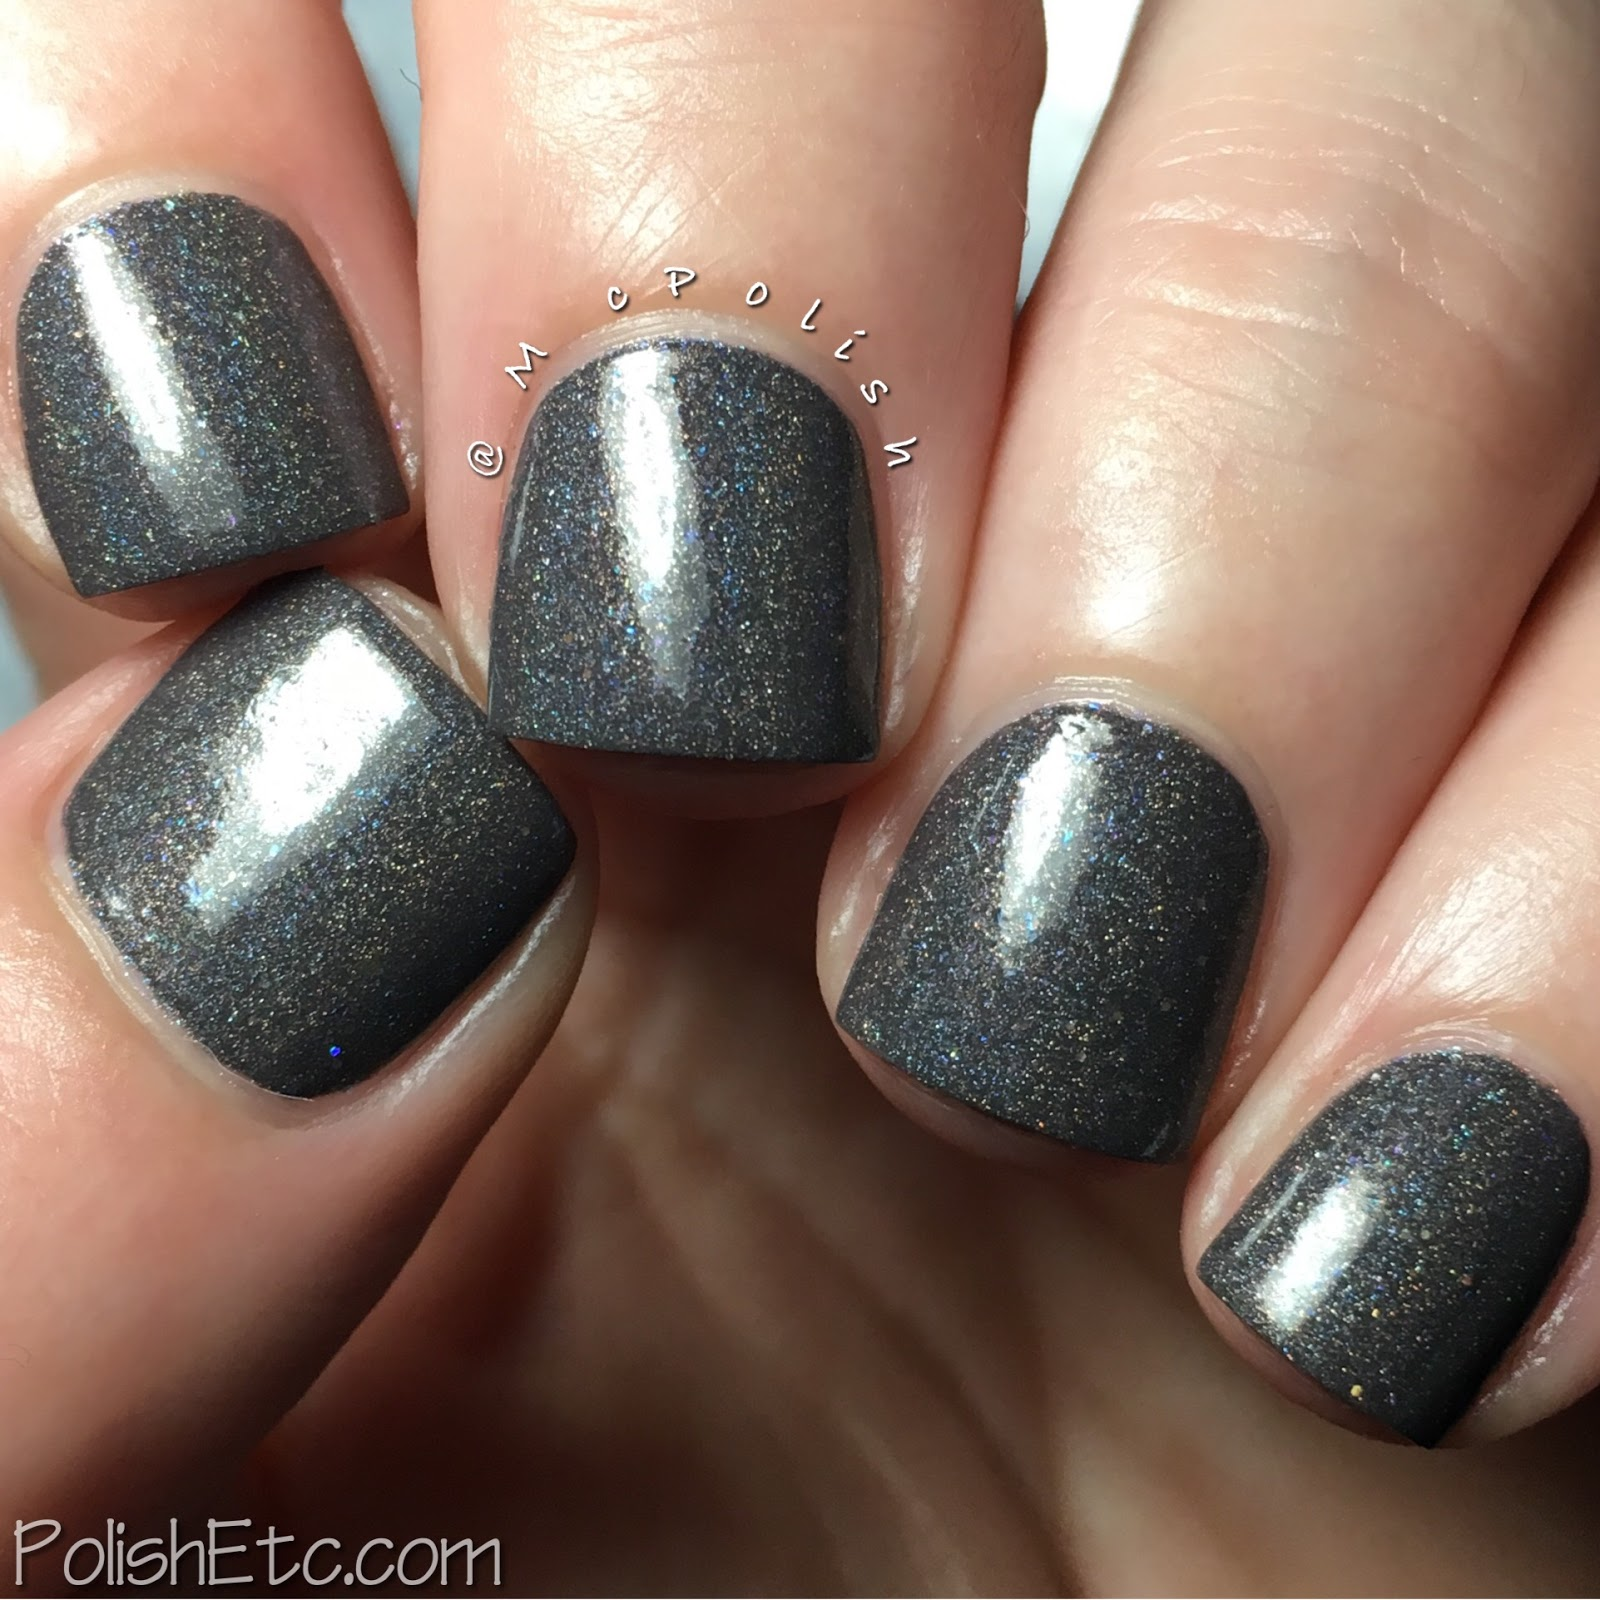 Glisten and Glow - The 5 Boroughs - McPolish - Quick Step in Queens